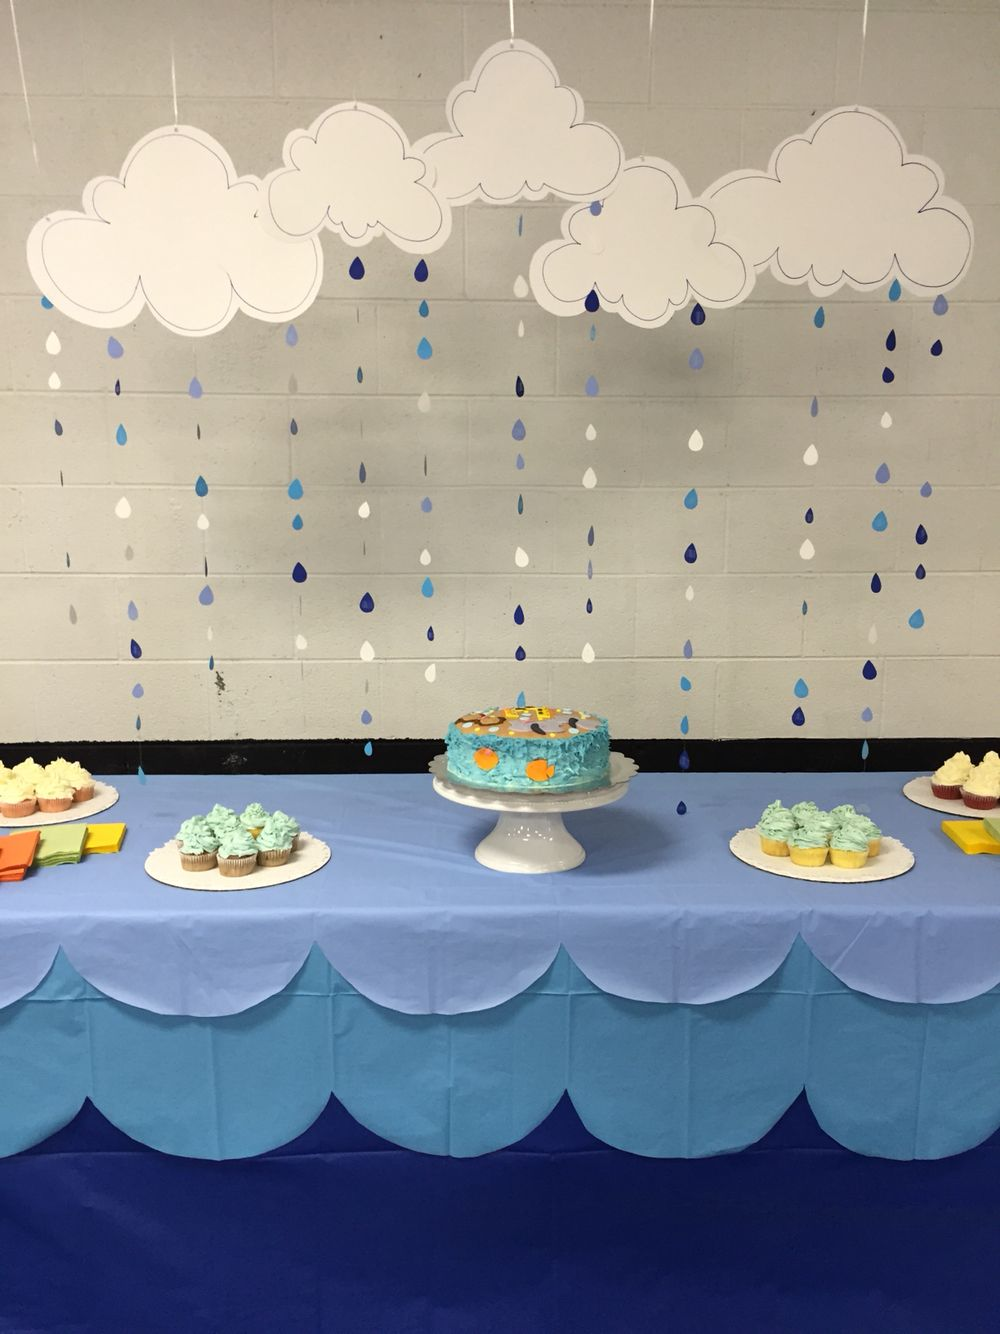 Decoracion De Nubes Para Baby Shower.Noah S Ark Themed Baby Shower Cake Table Decor